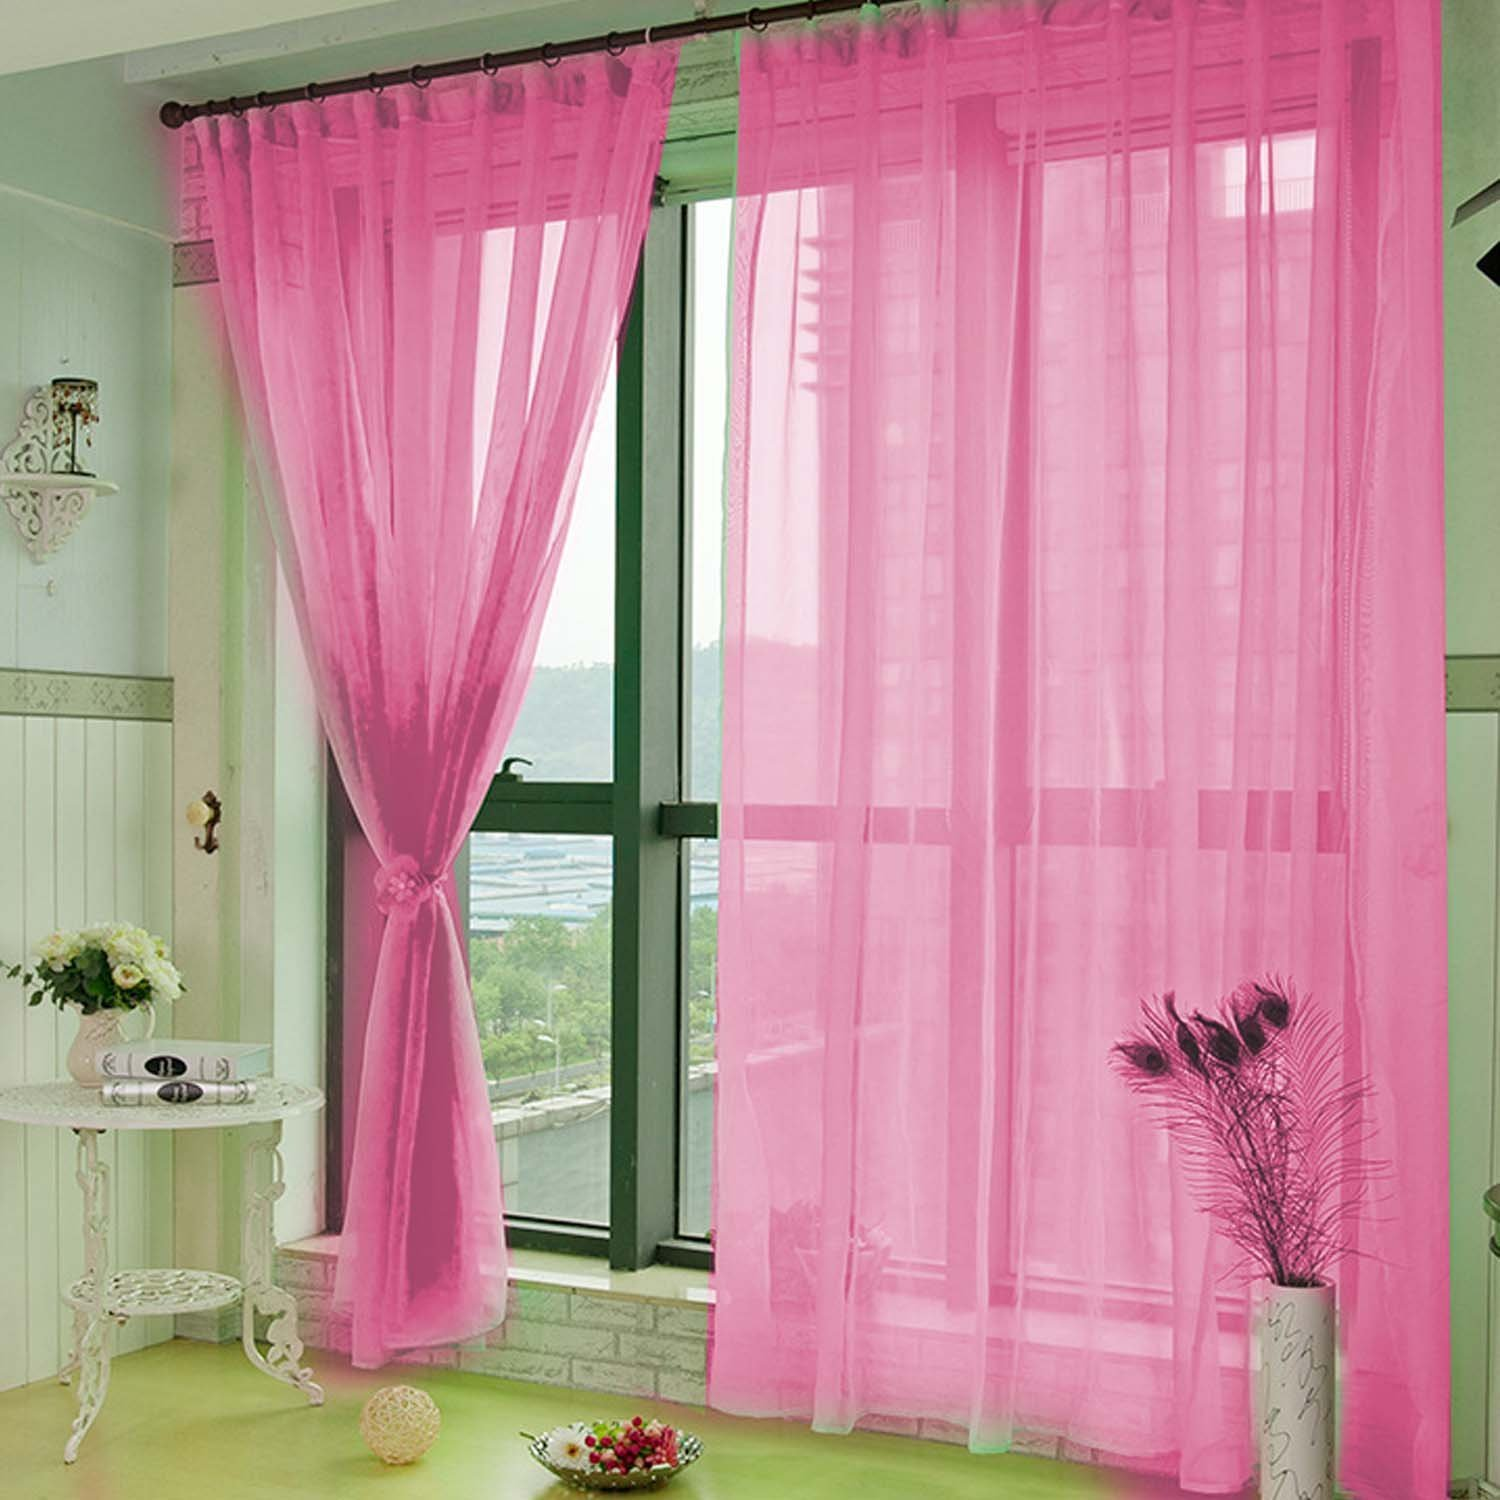 Elisona-1 x 2m Pure Color Voile Tulle Curtain Valance Room Door Window Balcony Curtain Divider Decor Pink